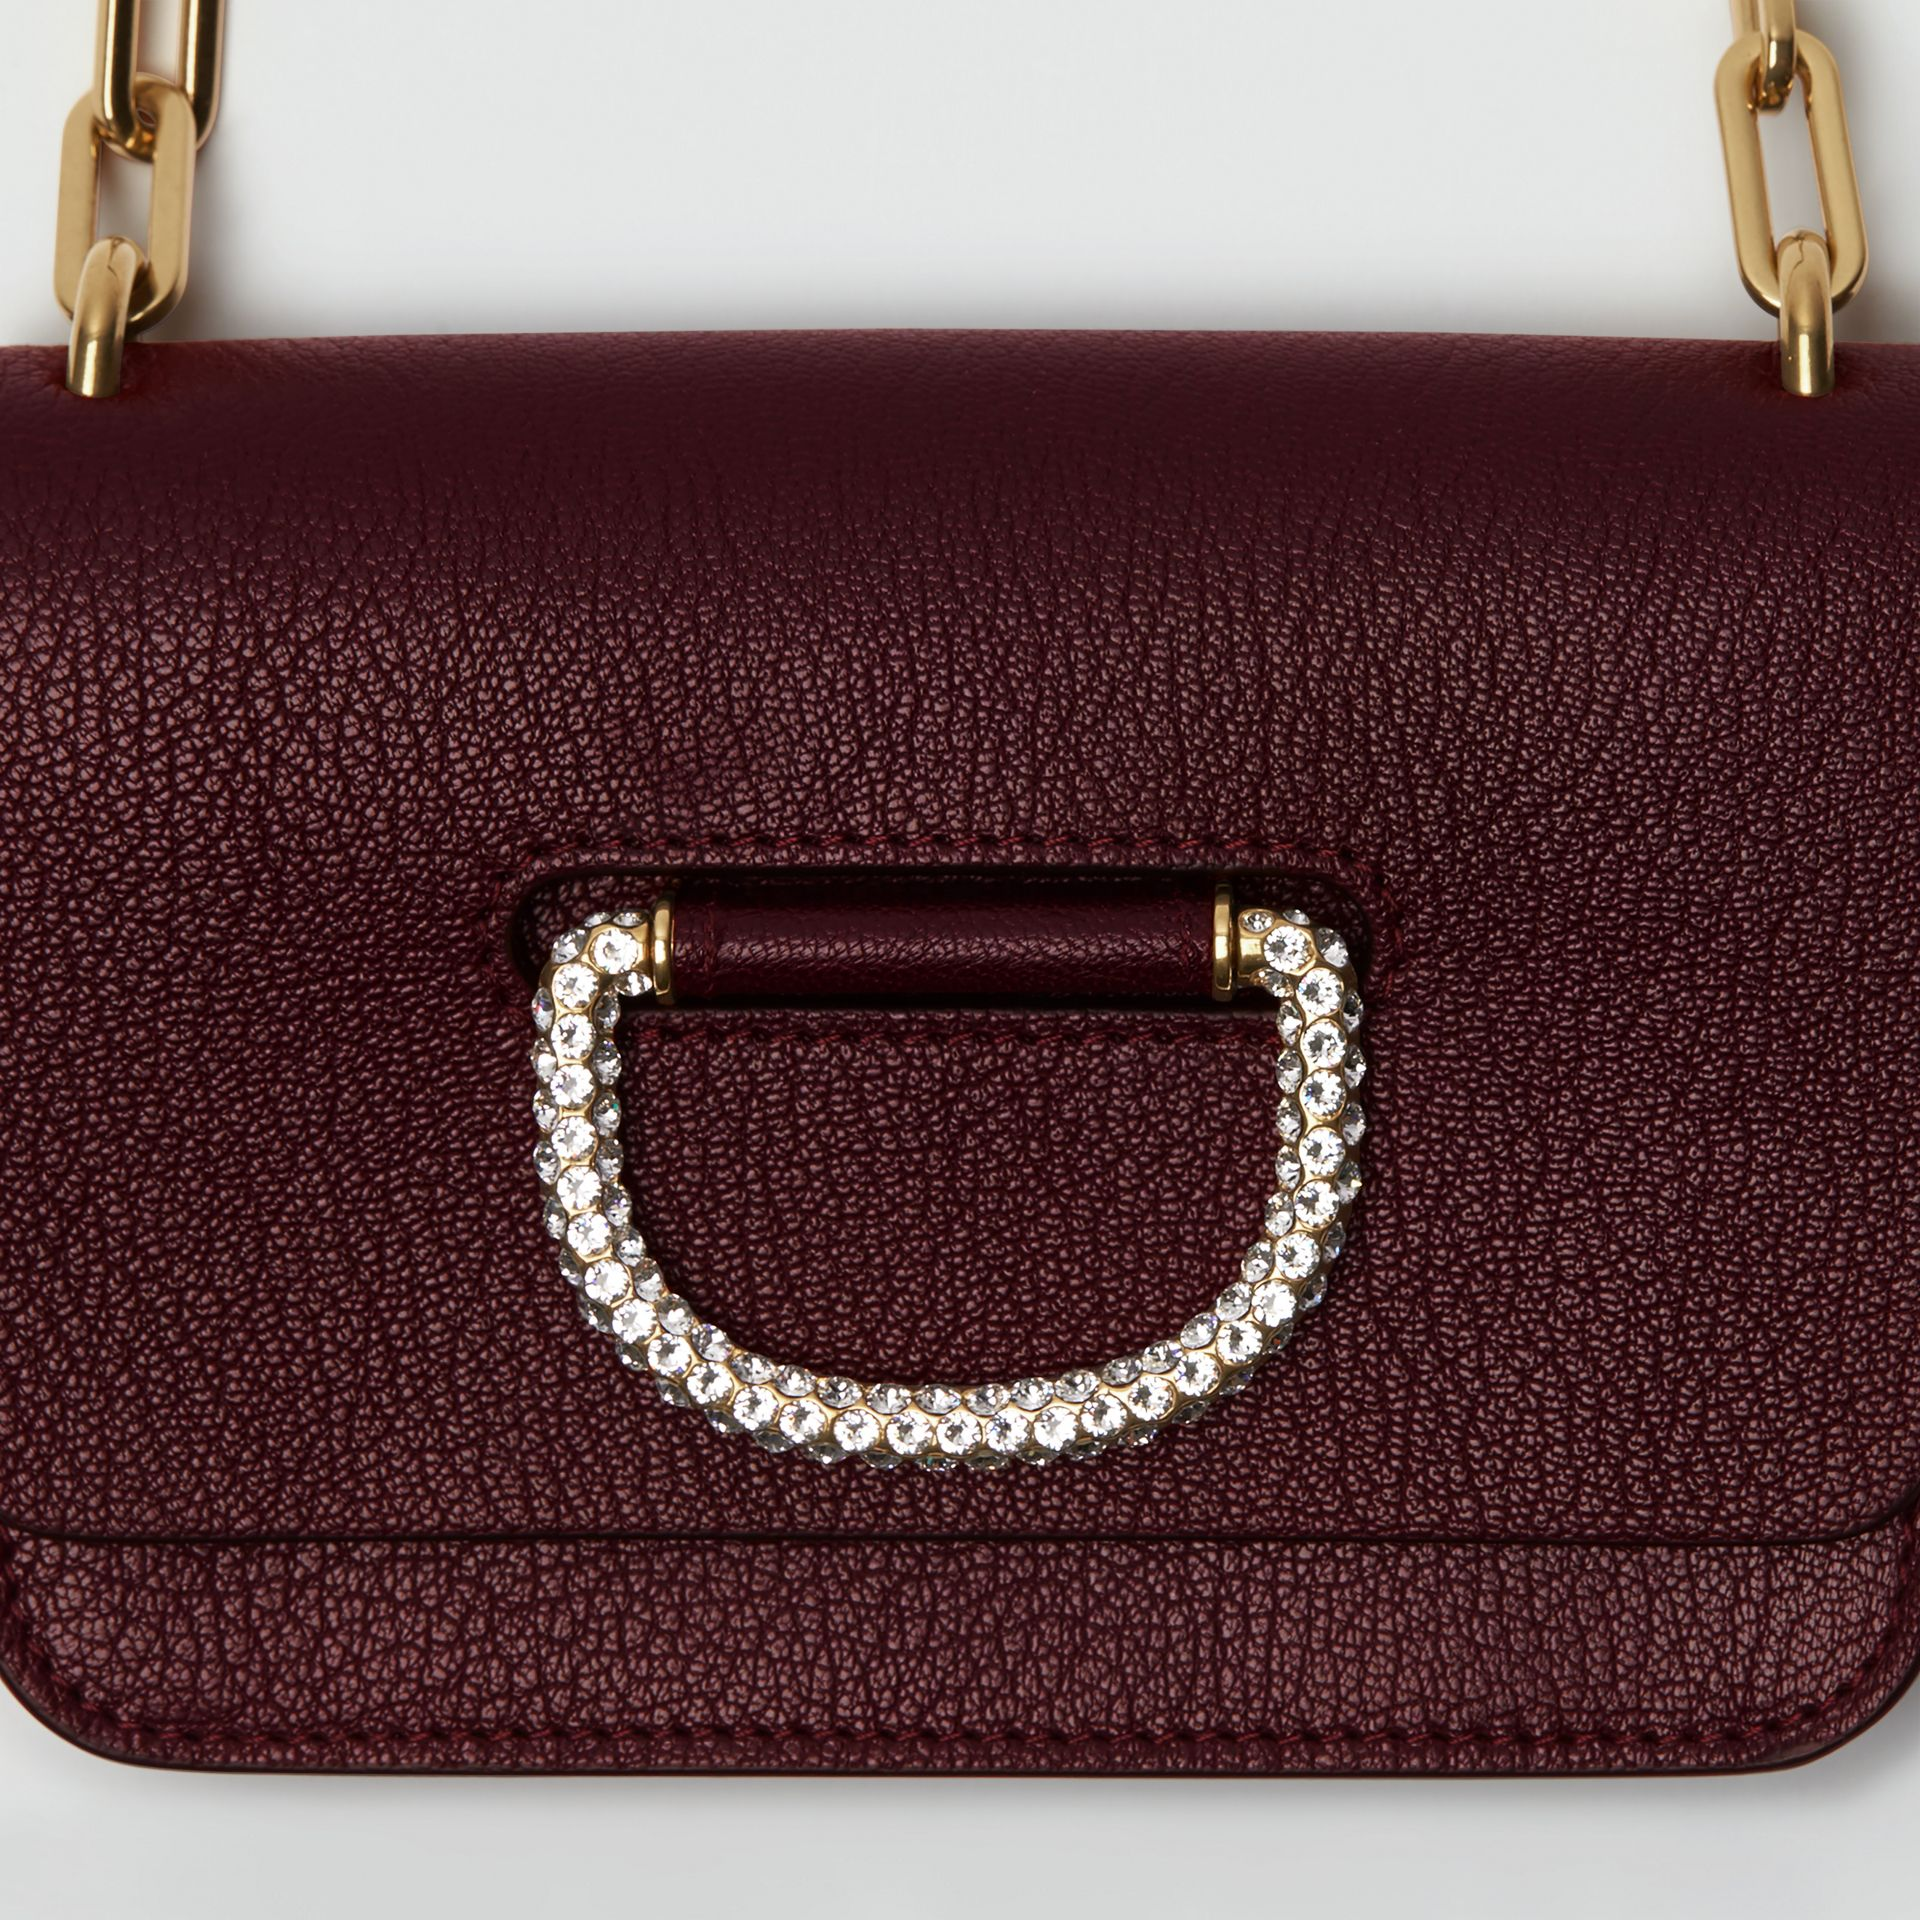 Borsa The D-ring mini in pelle con cristalli (Rosso Violetto Intenso) - Donna | Burberry - immagine della galleria 1